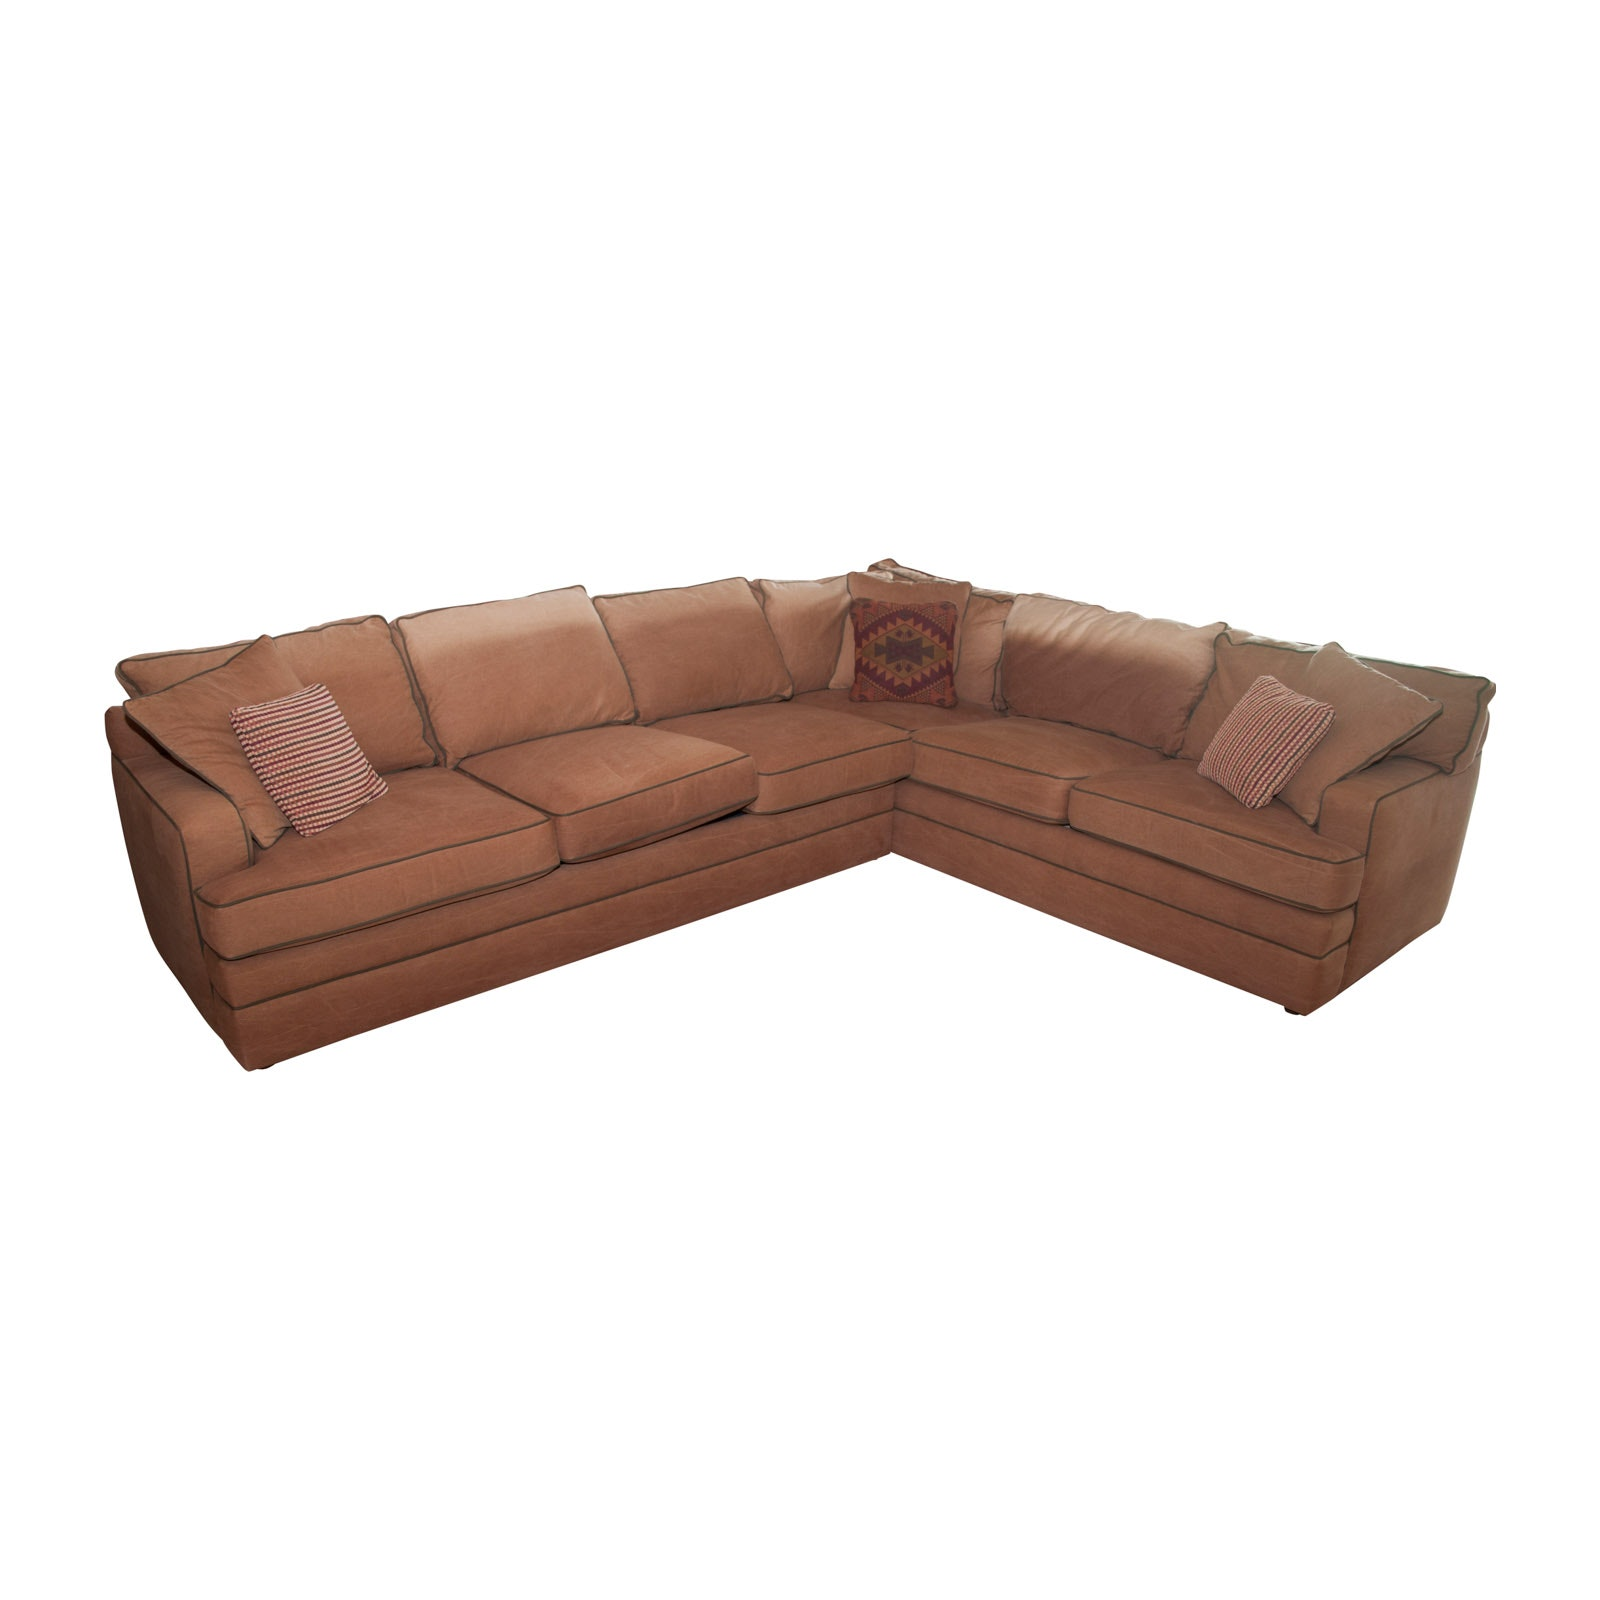 Sectional Sleeper Sofa by Bernhardt Furniture